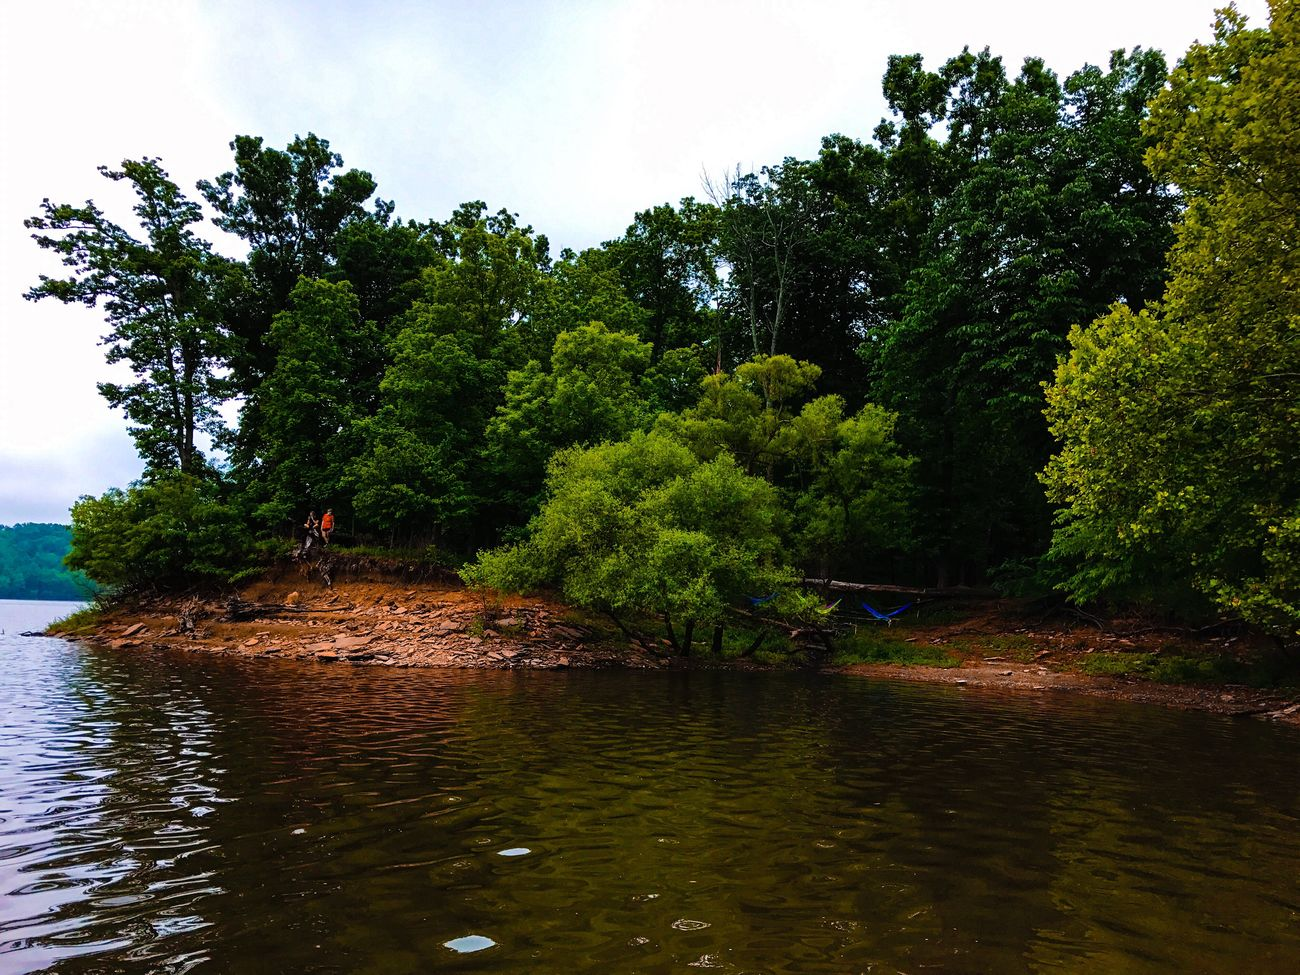 Tree Water Nature River Outdoors Beauty In Nature No People Sky Scenics Growth Day Regatta